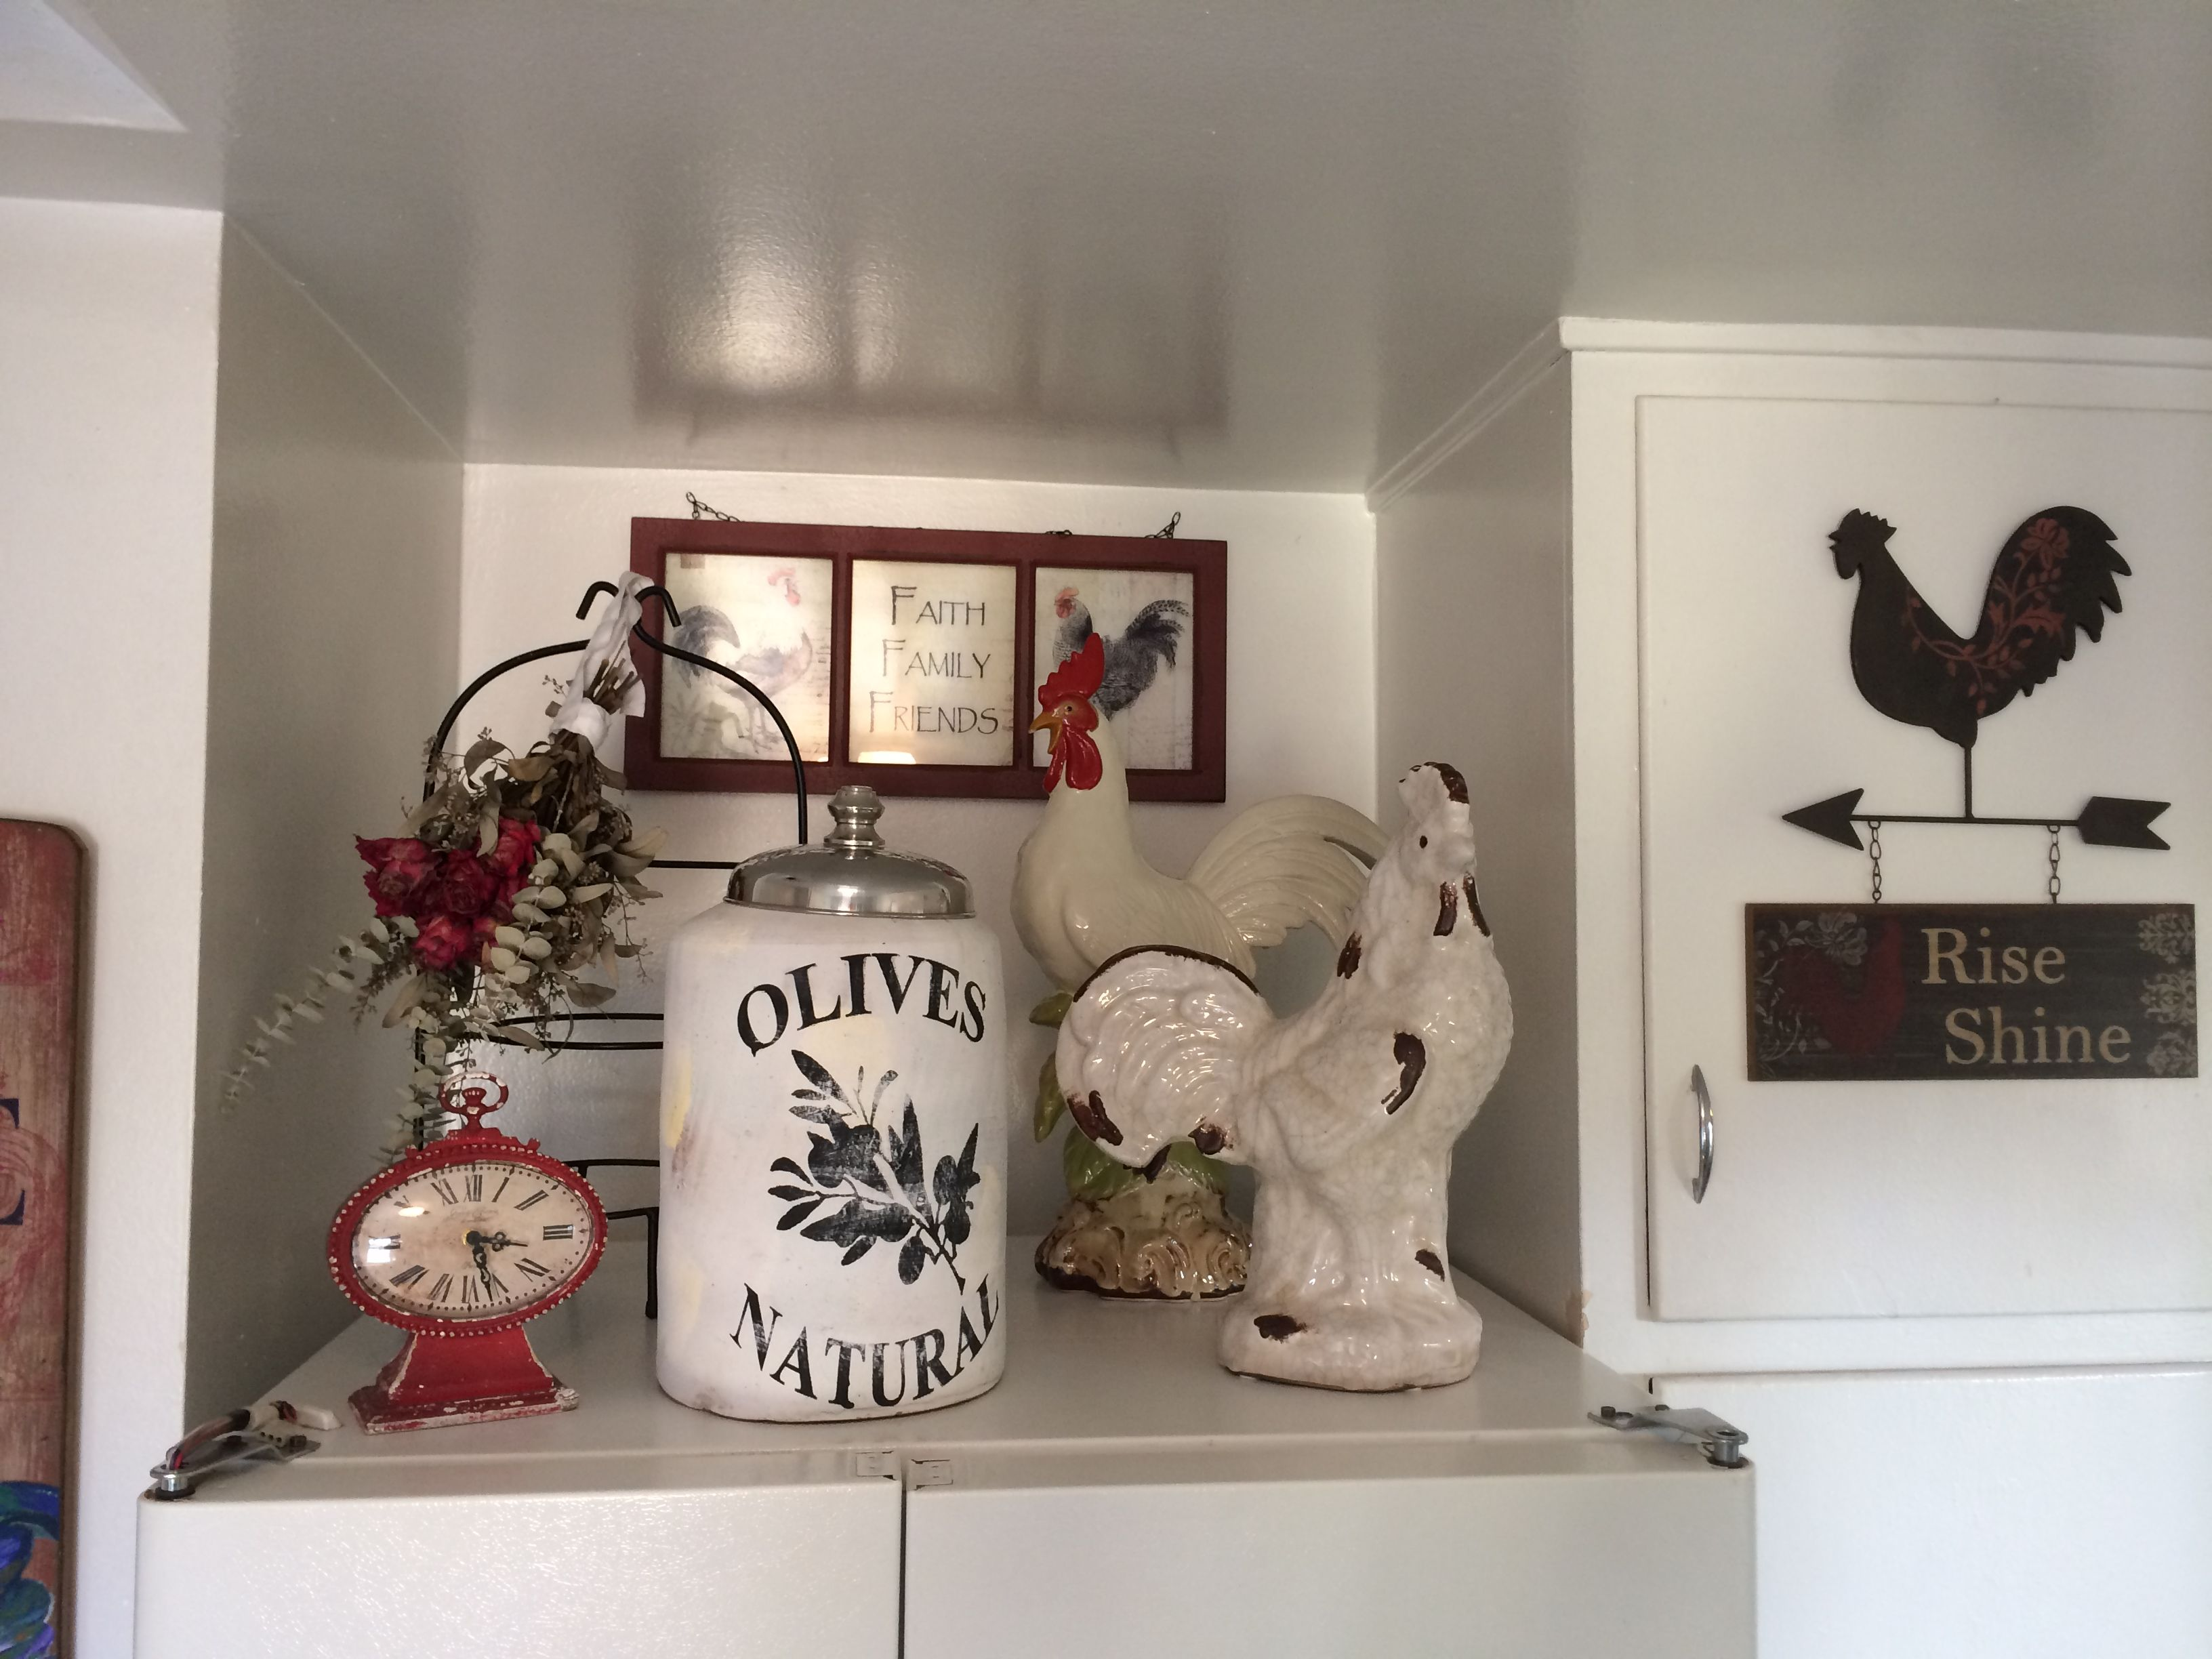 Went With A Rooster Theme For Kitchen Since I Already Owned Some Rooster Decor Mi Casa Decor